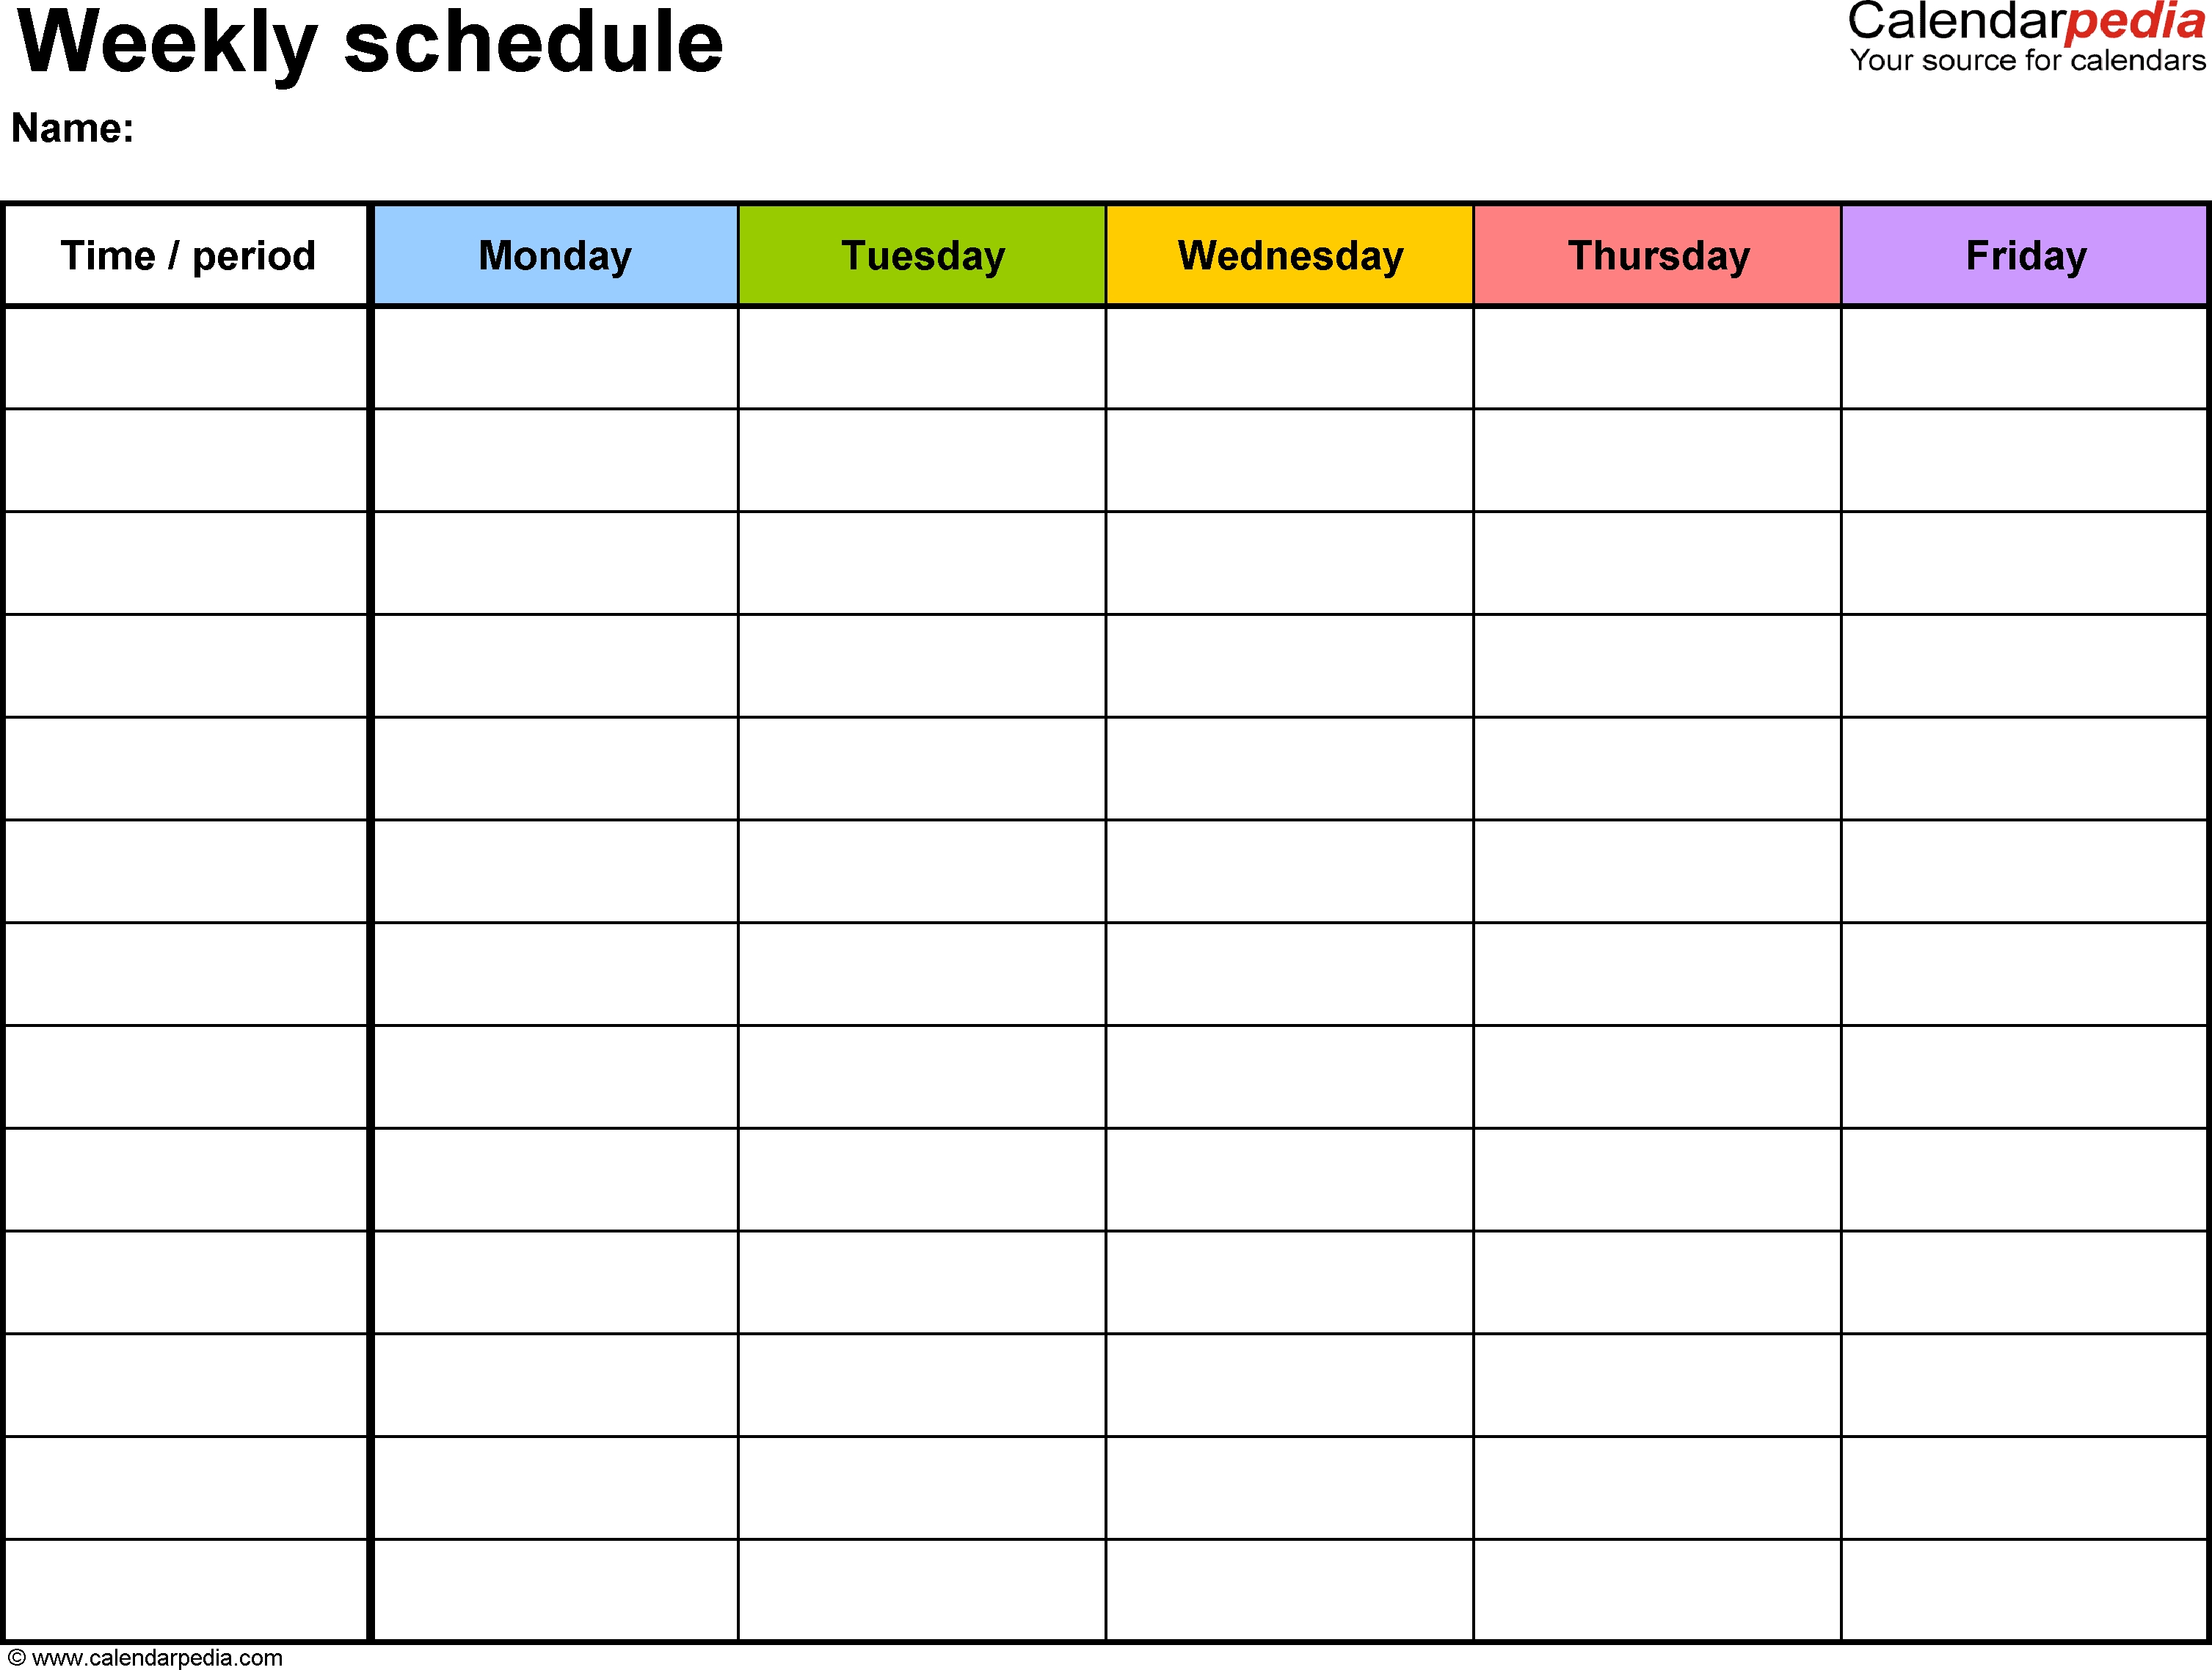 Weekly Schedule Template For Word Version 1: Landscape, 1 Page  5 Day Monthly Calendar Printable